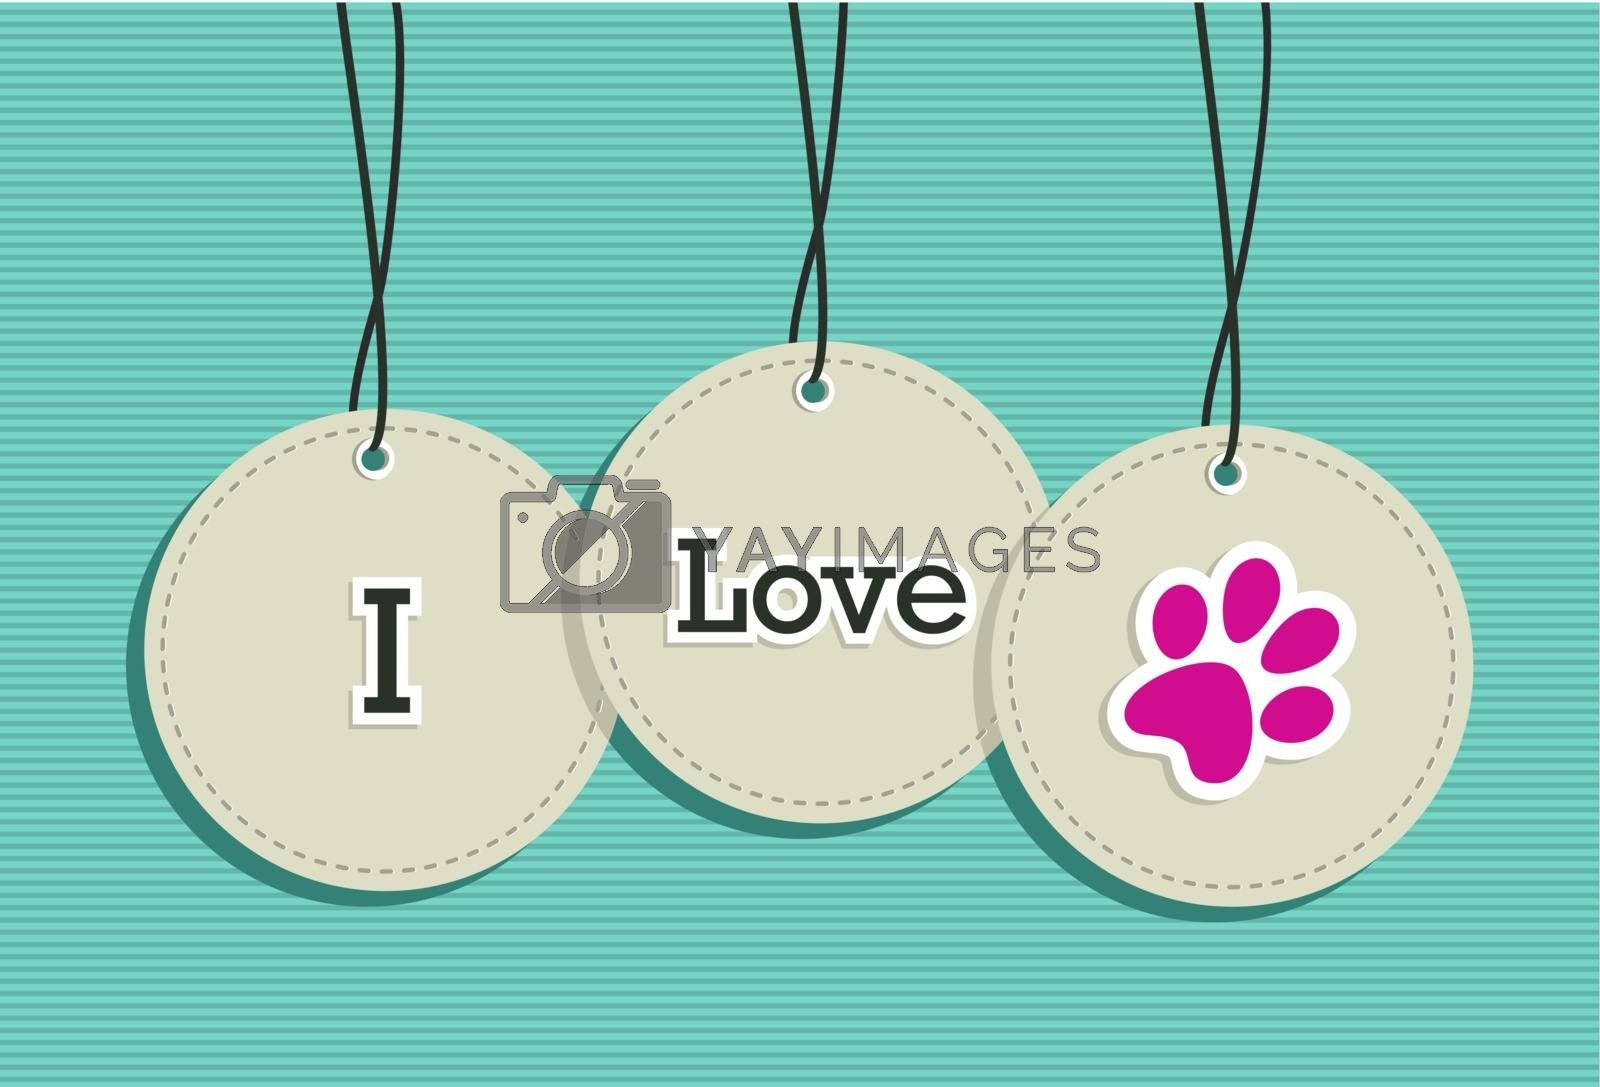 I love animals hang tags icons paw shape illustration set. Vector file layered for easy manipulation and custom coloring.